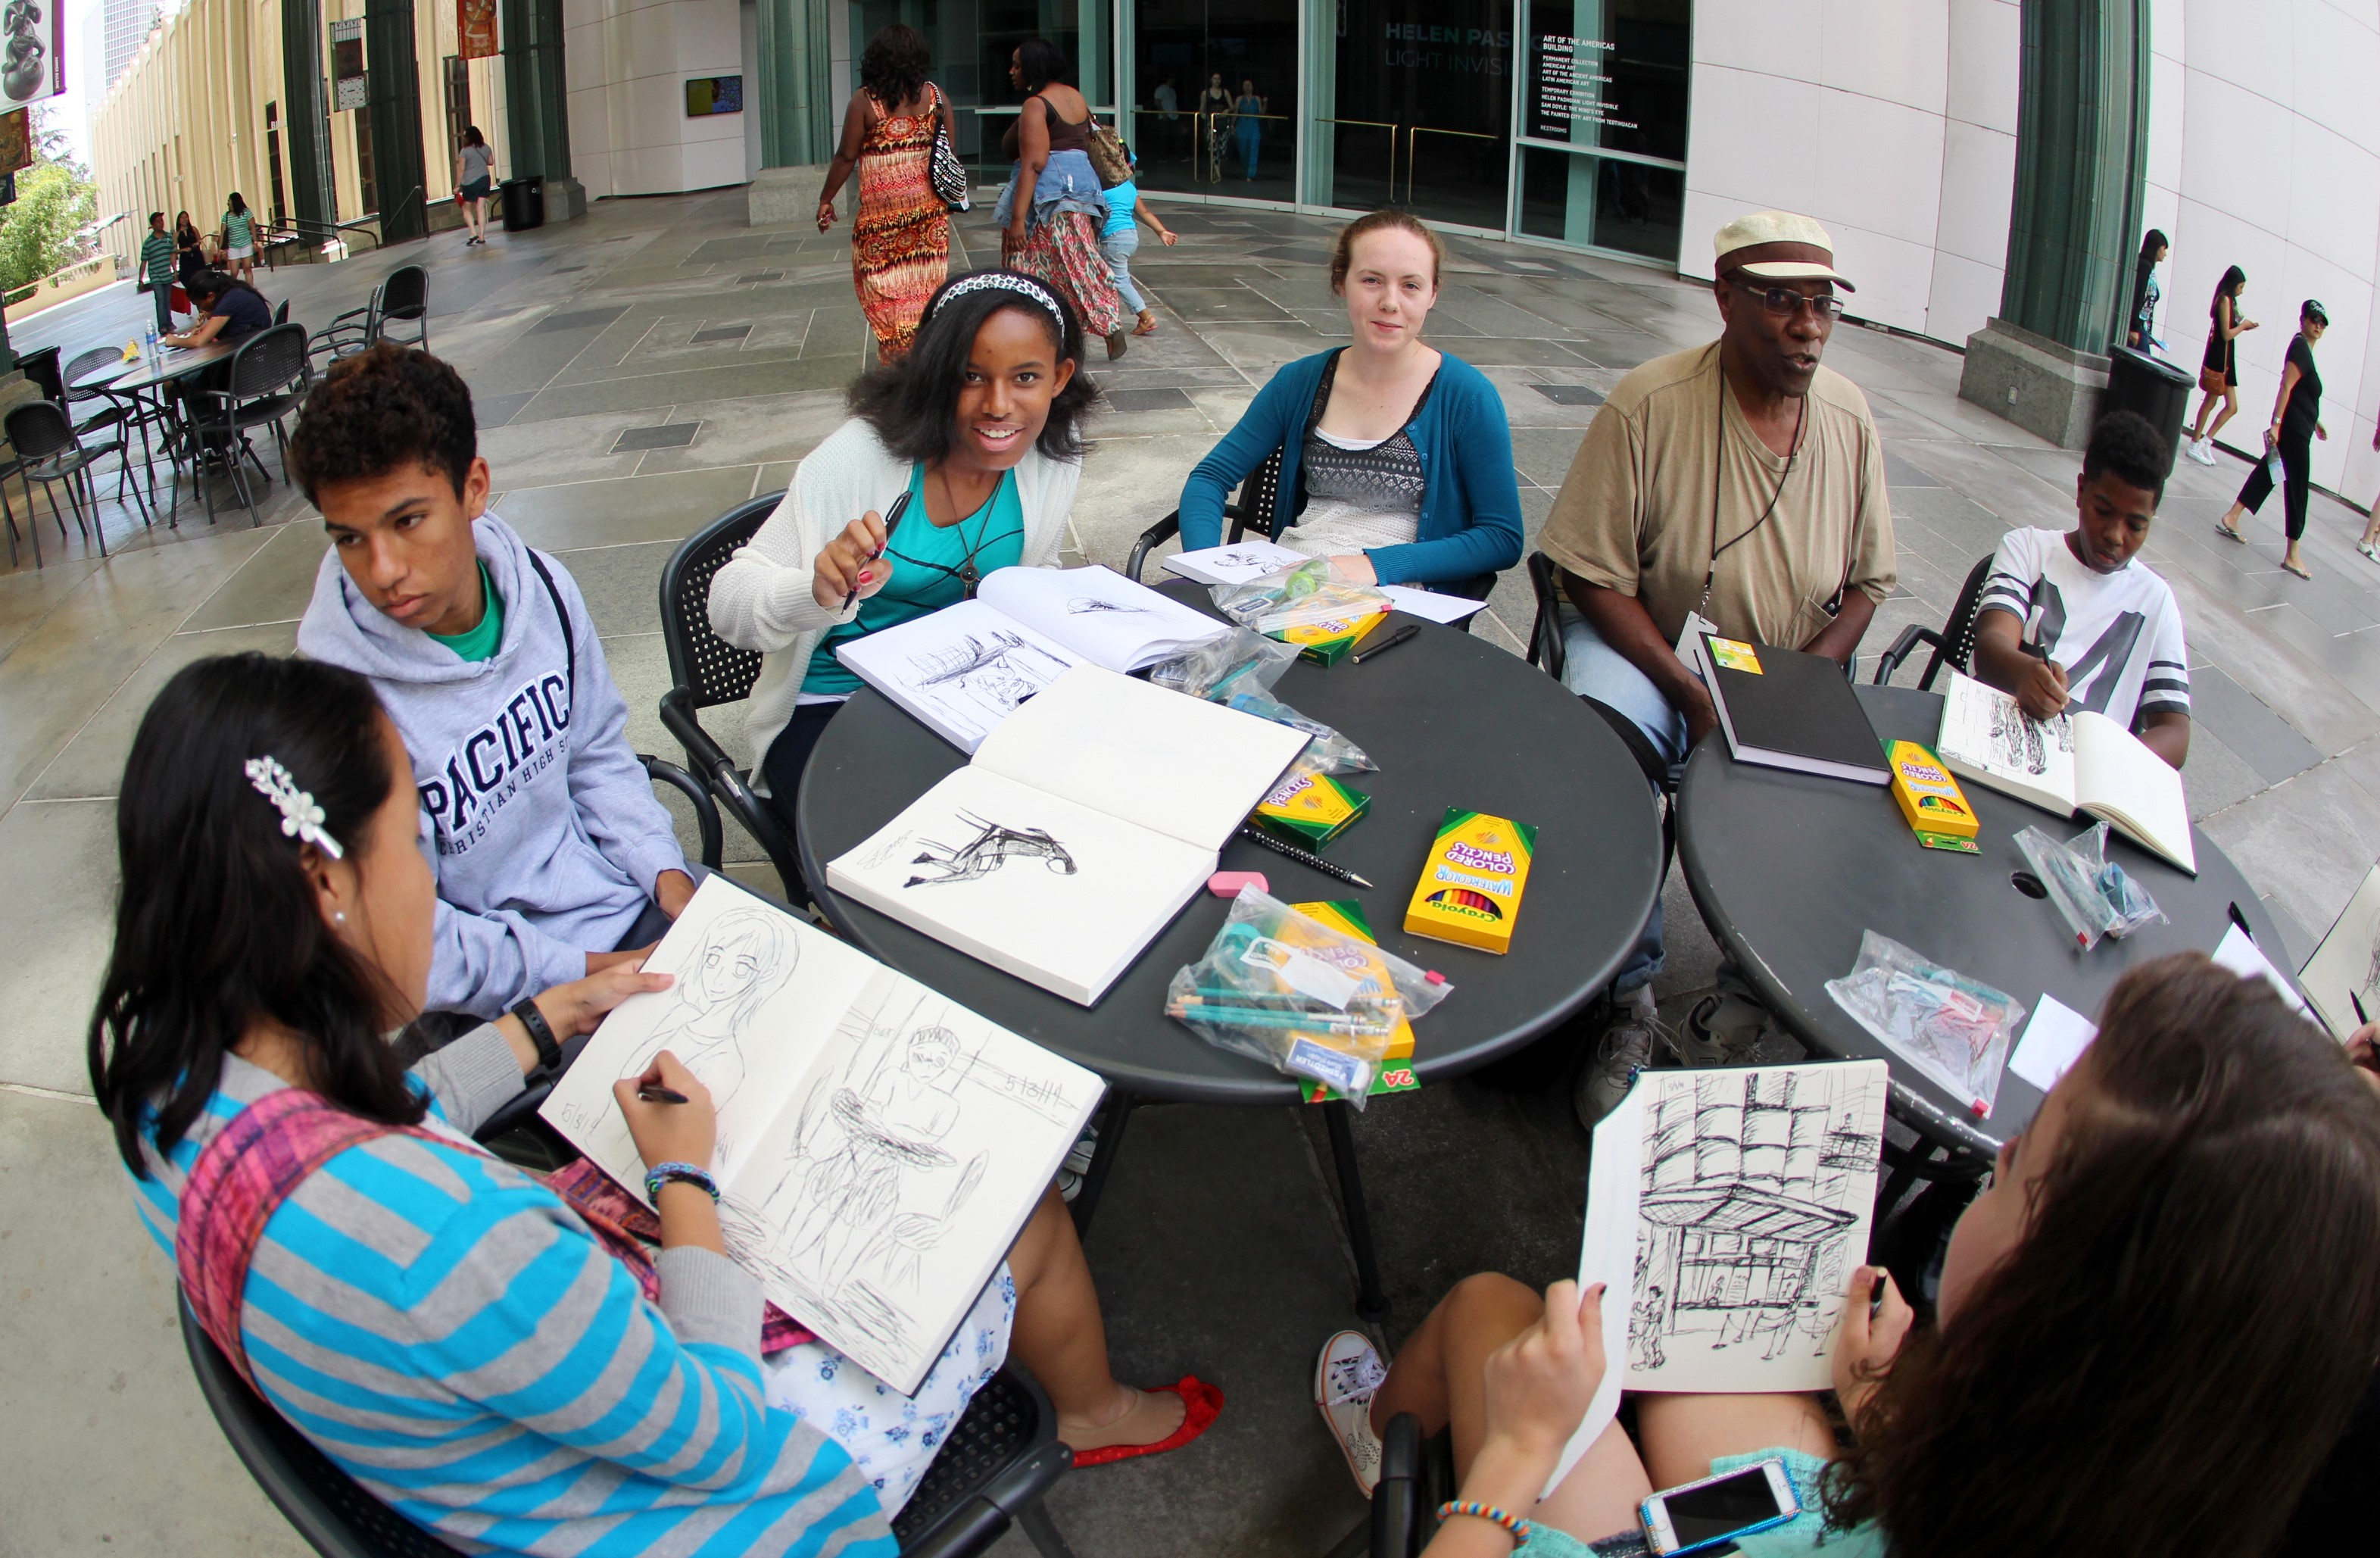 Teen Art Class: Drawing (Ages 13+) - Tastethecounty.ca